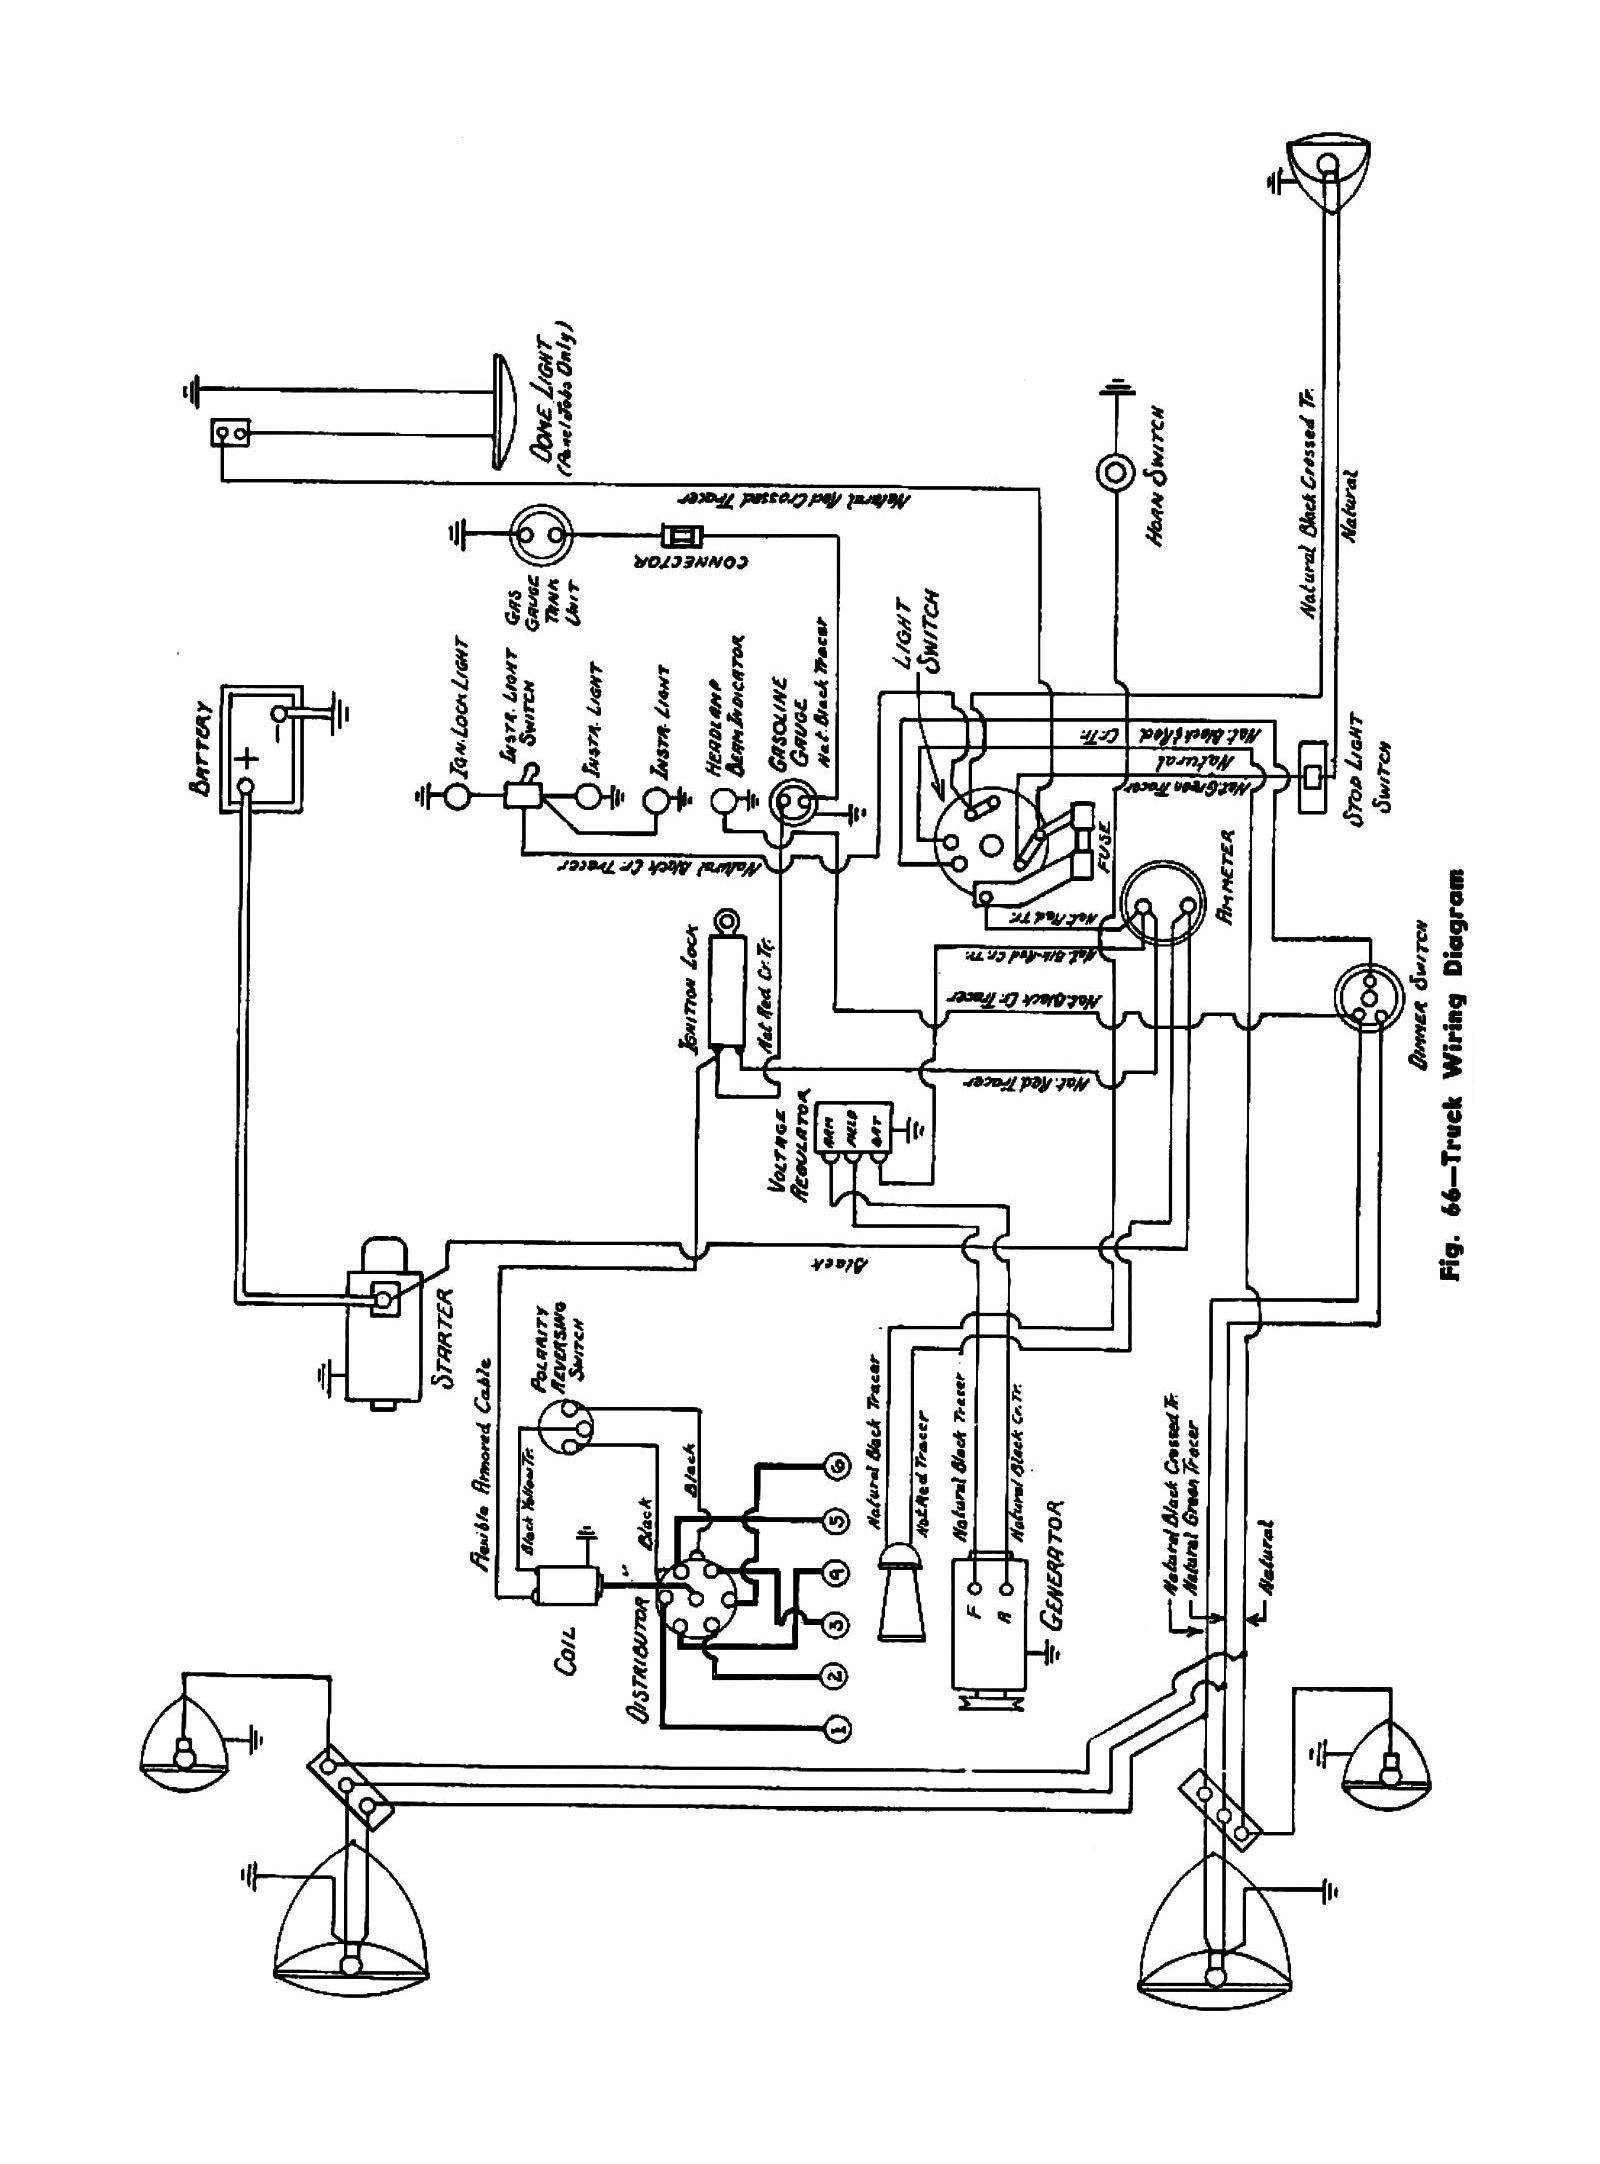 45truck ihc truck wiring diagrams mazda truck wiring diagrams \u2022 free 1999 Dodge Fuse Box Diagram at suagrazia.org